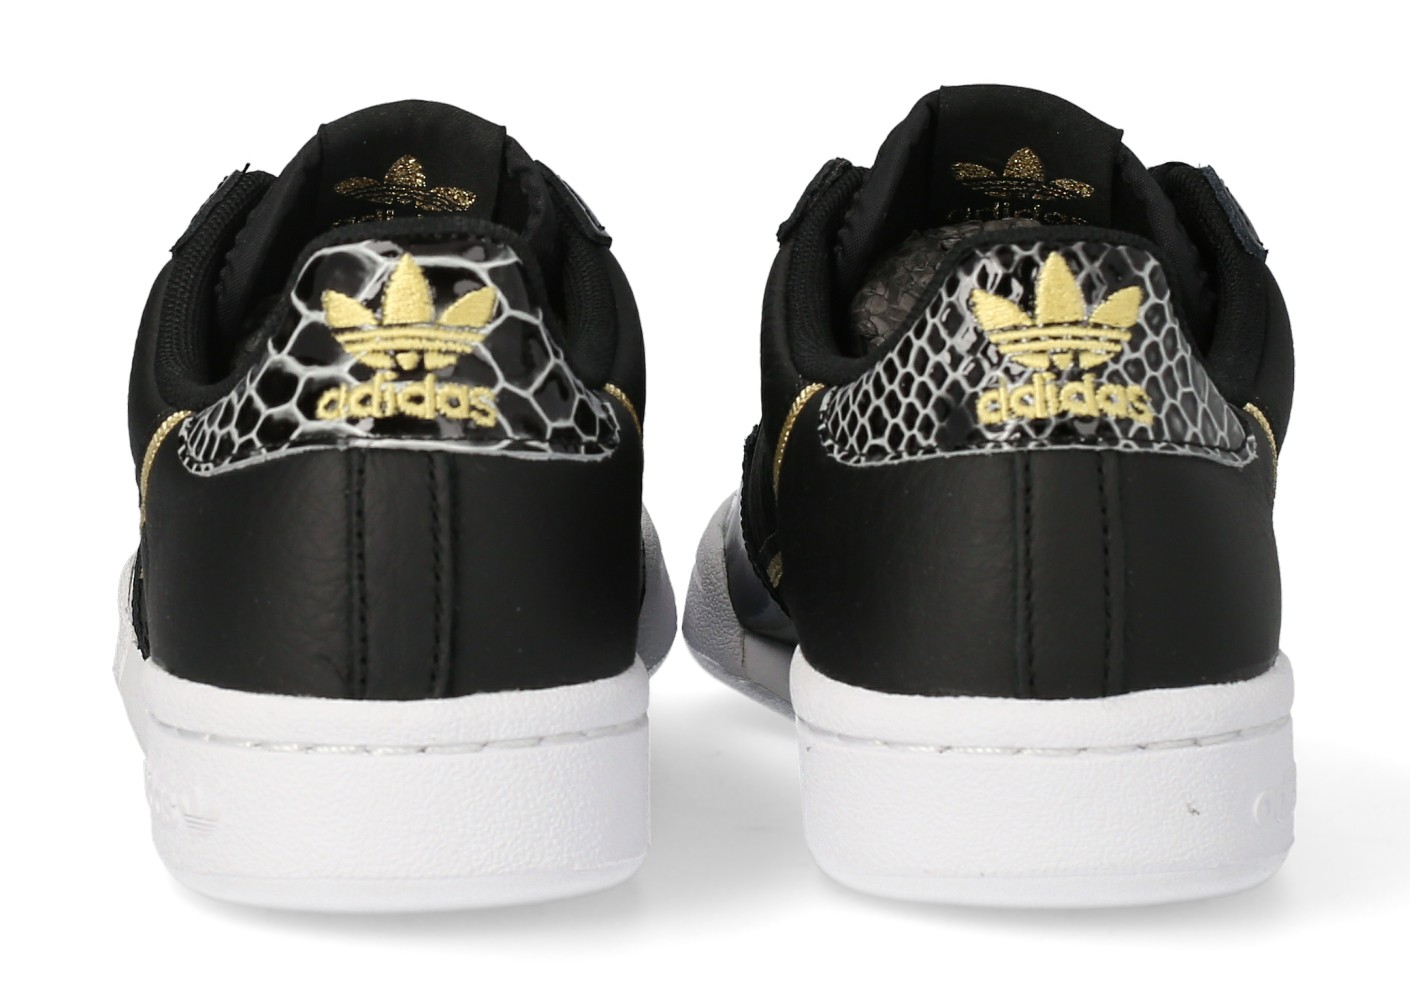 adidas Continental 80 noire et or Femme - Chaussures adidas ...